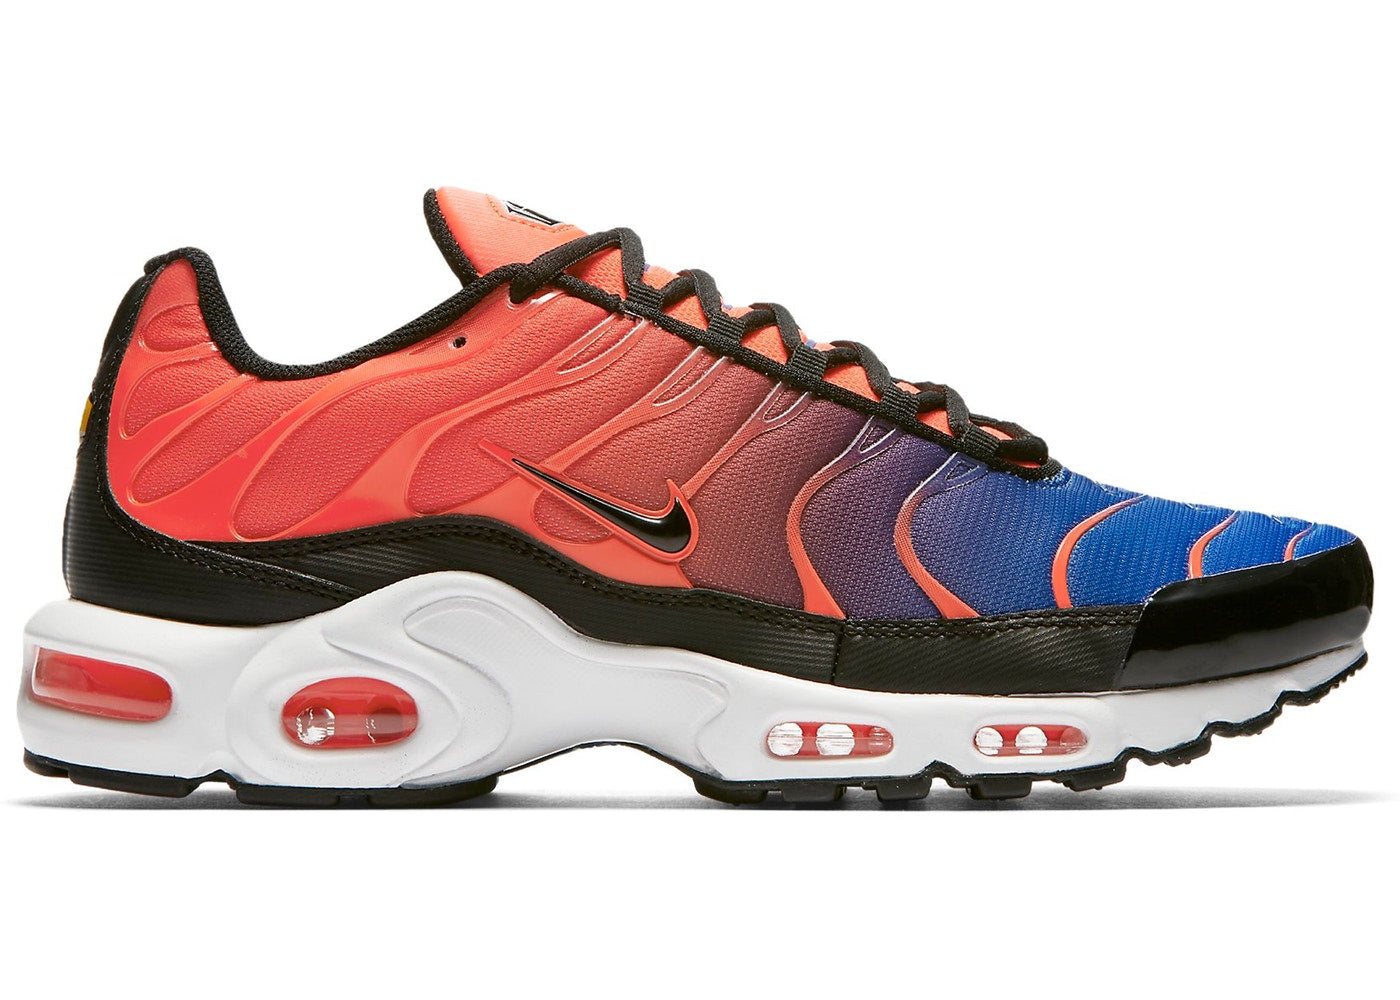 4cf4457fc0 NIKE Airmax Plus (Total Crimson/Black Racer Blue) – The Shop 147